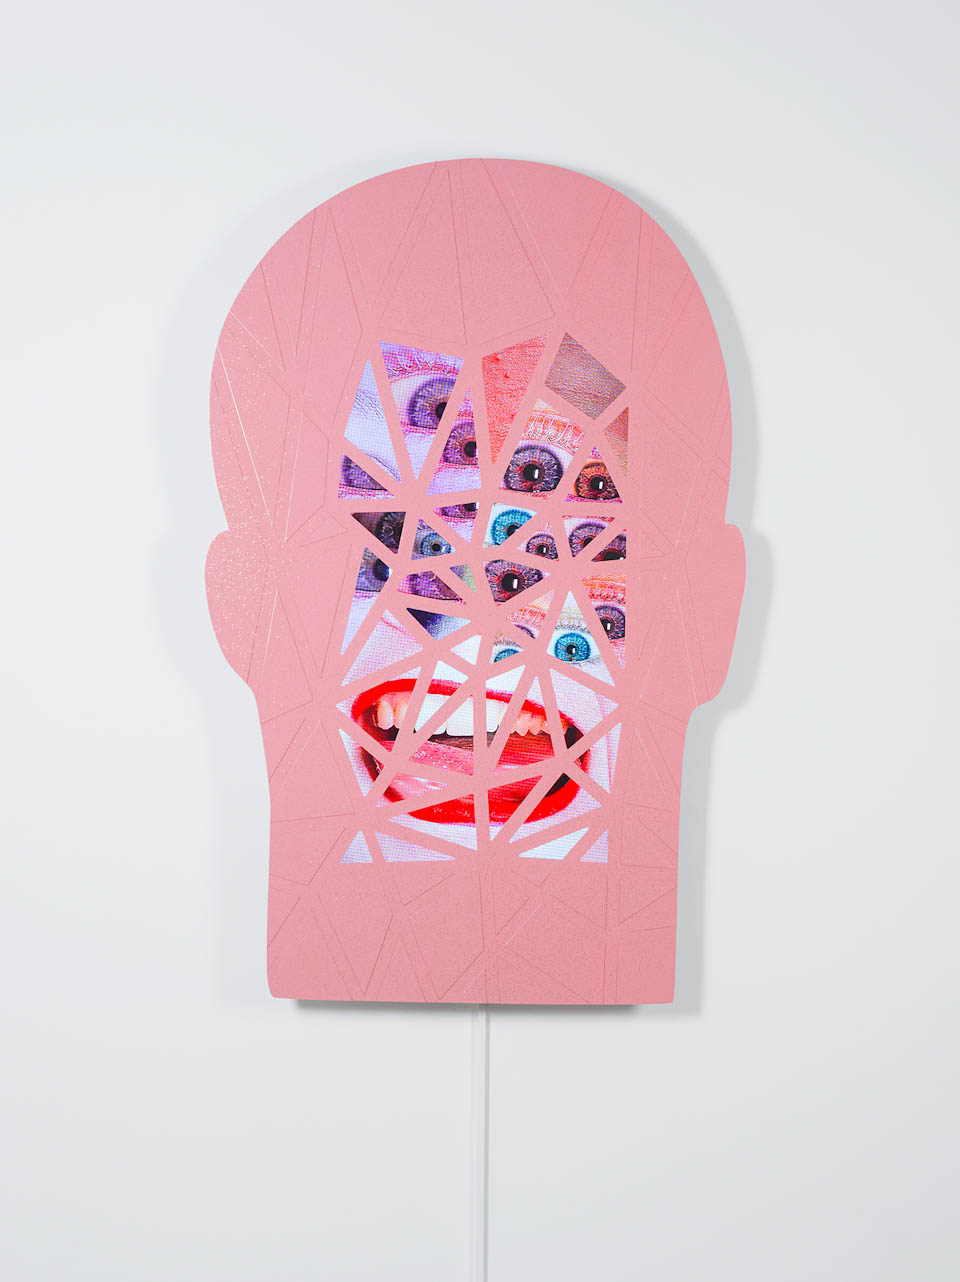 Tony_Oursler_2015_OUR_175_big.jpg